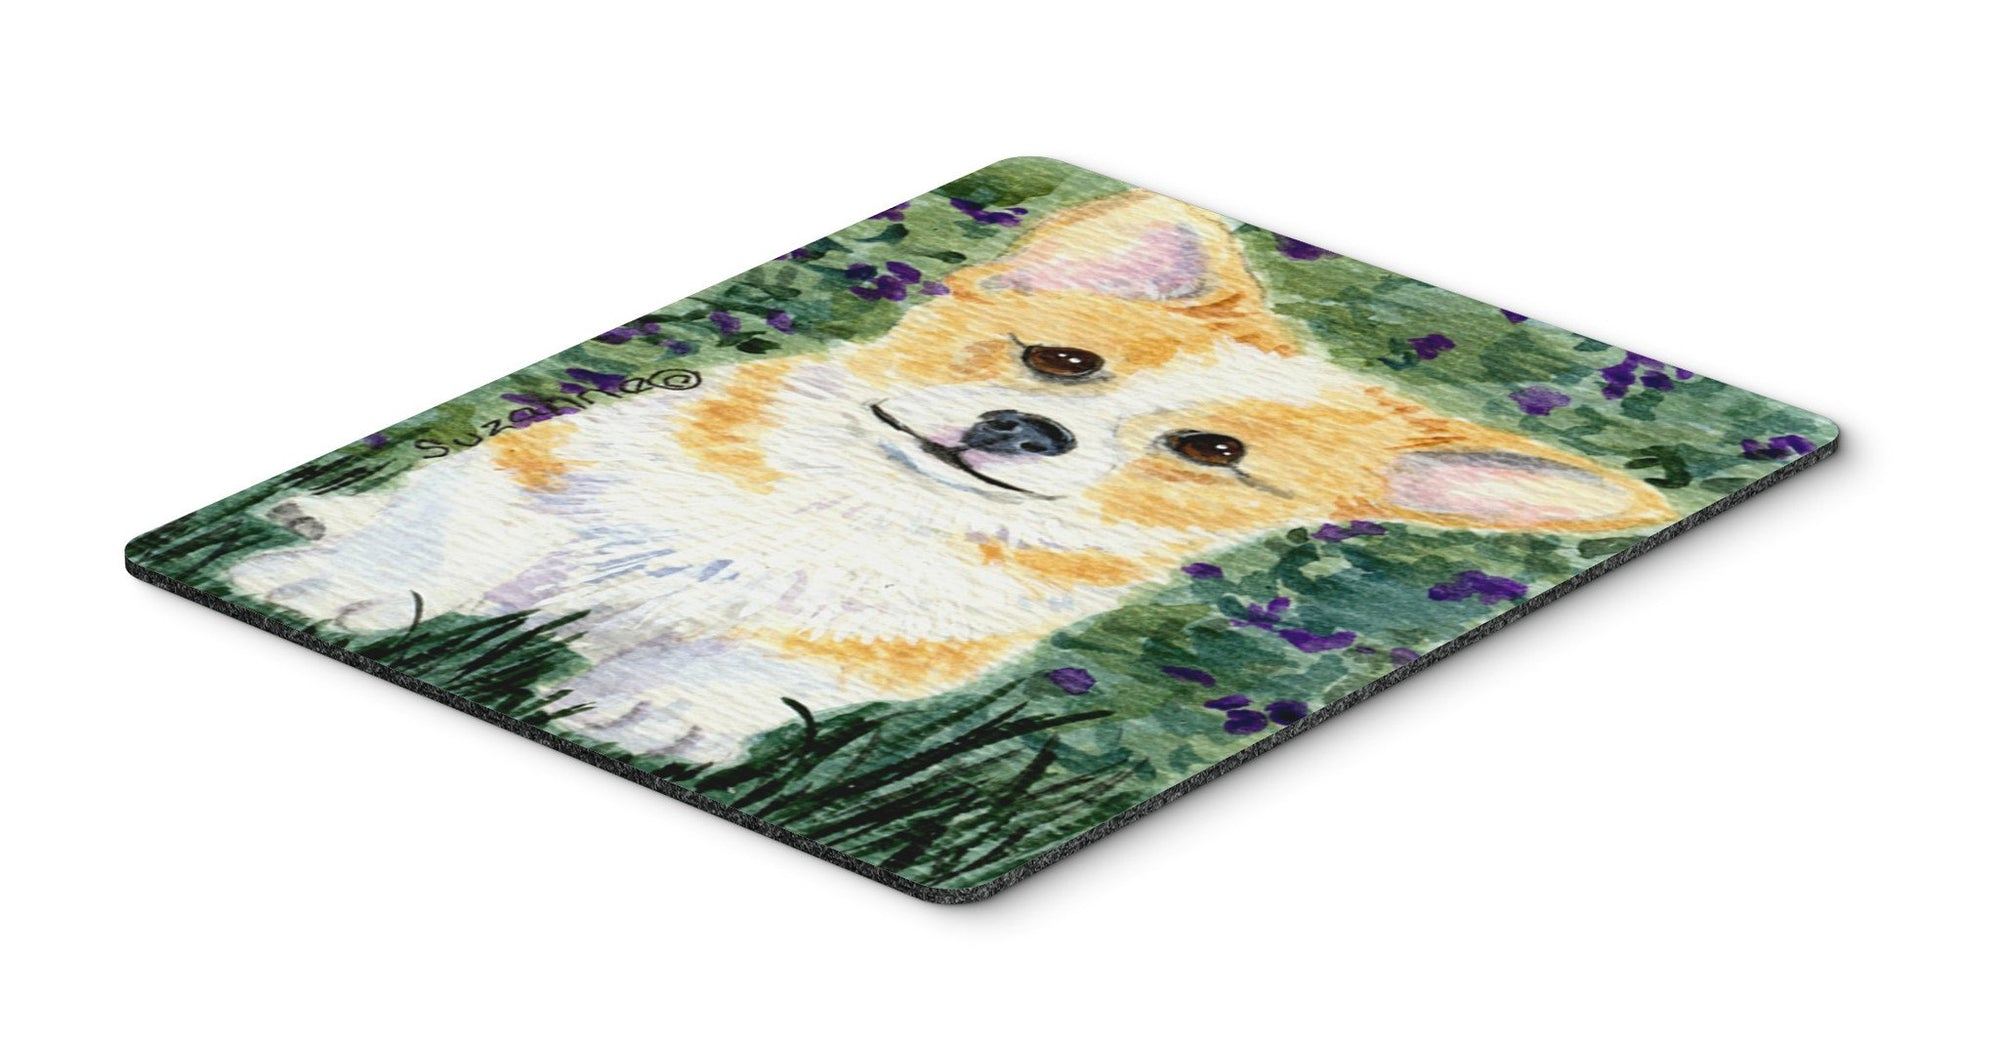 Corgi Mouse Pad / Hot Pad / Trivet - the-store.com